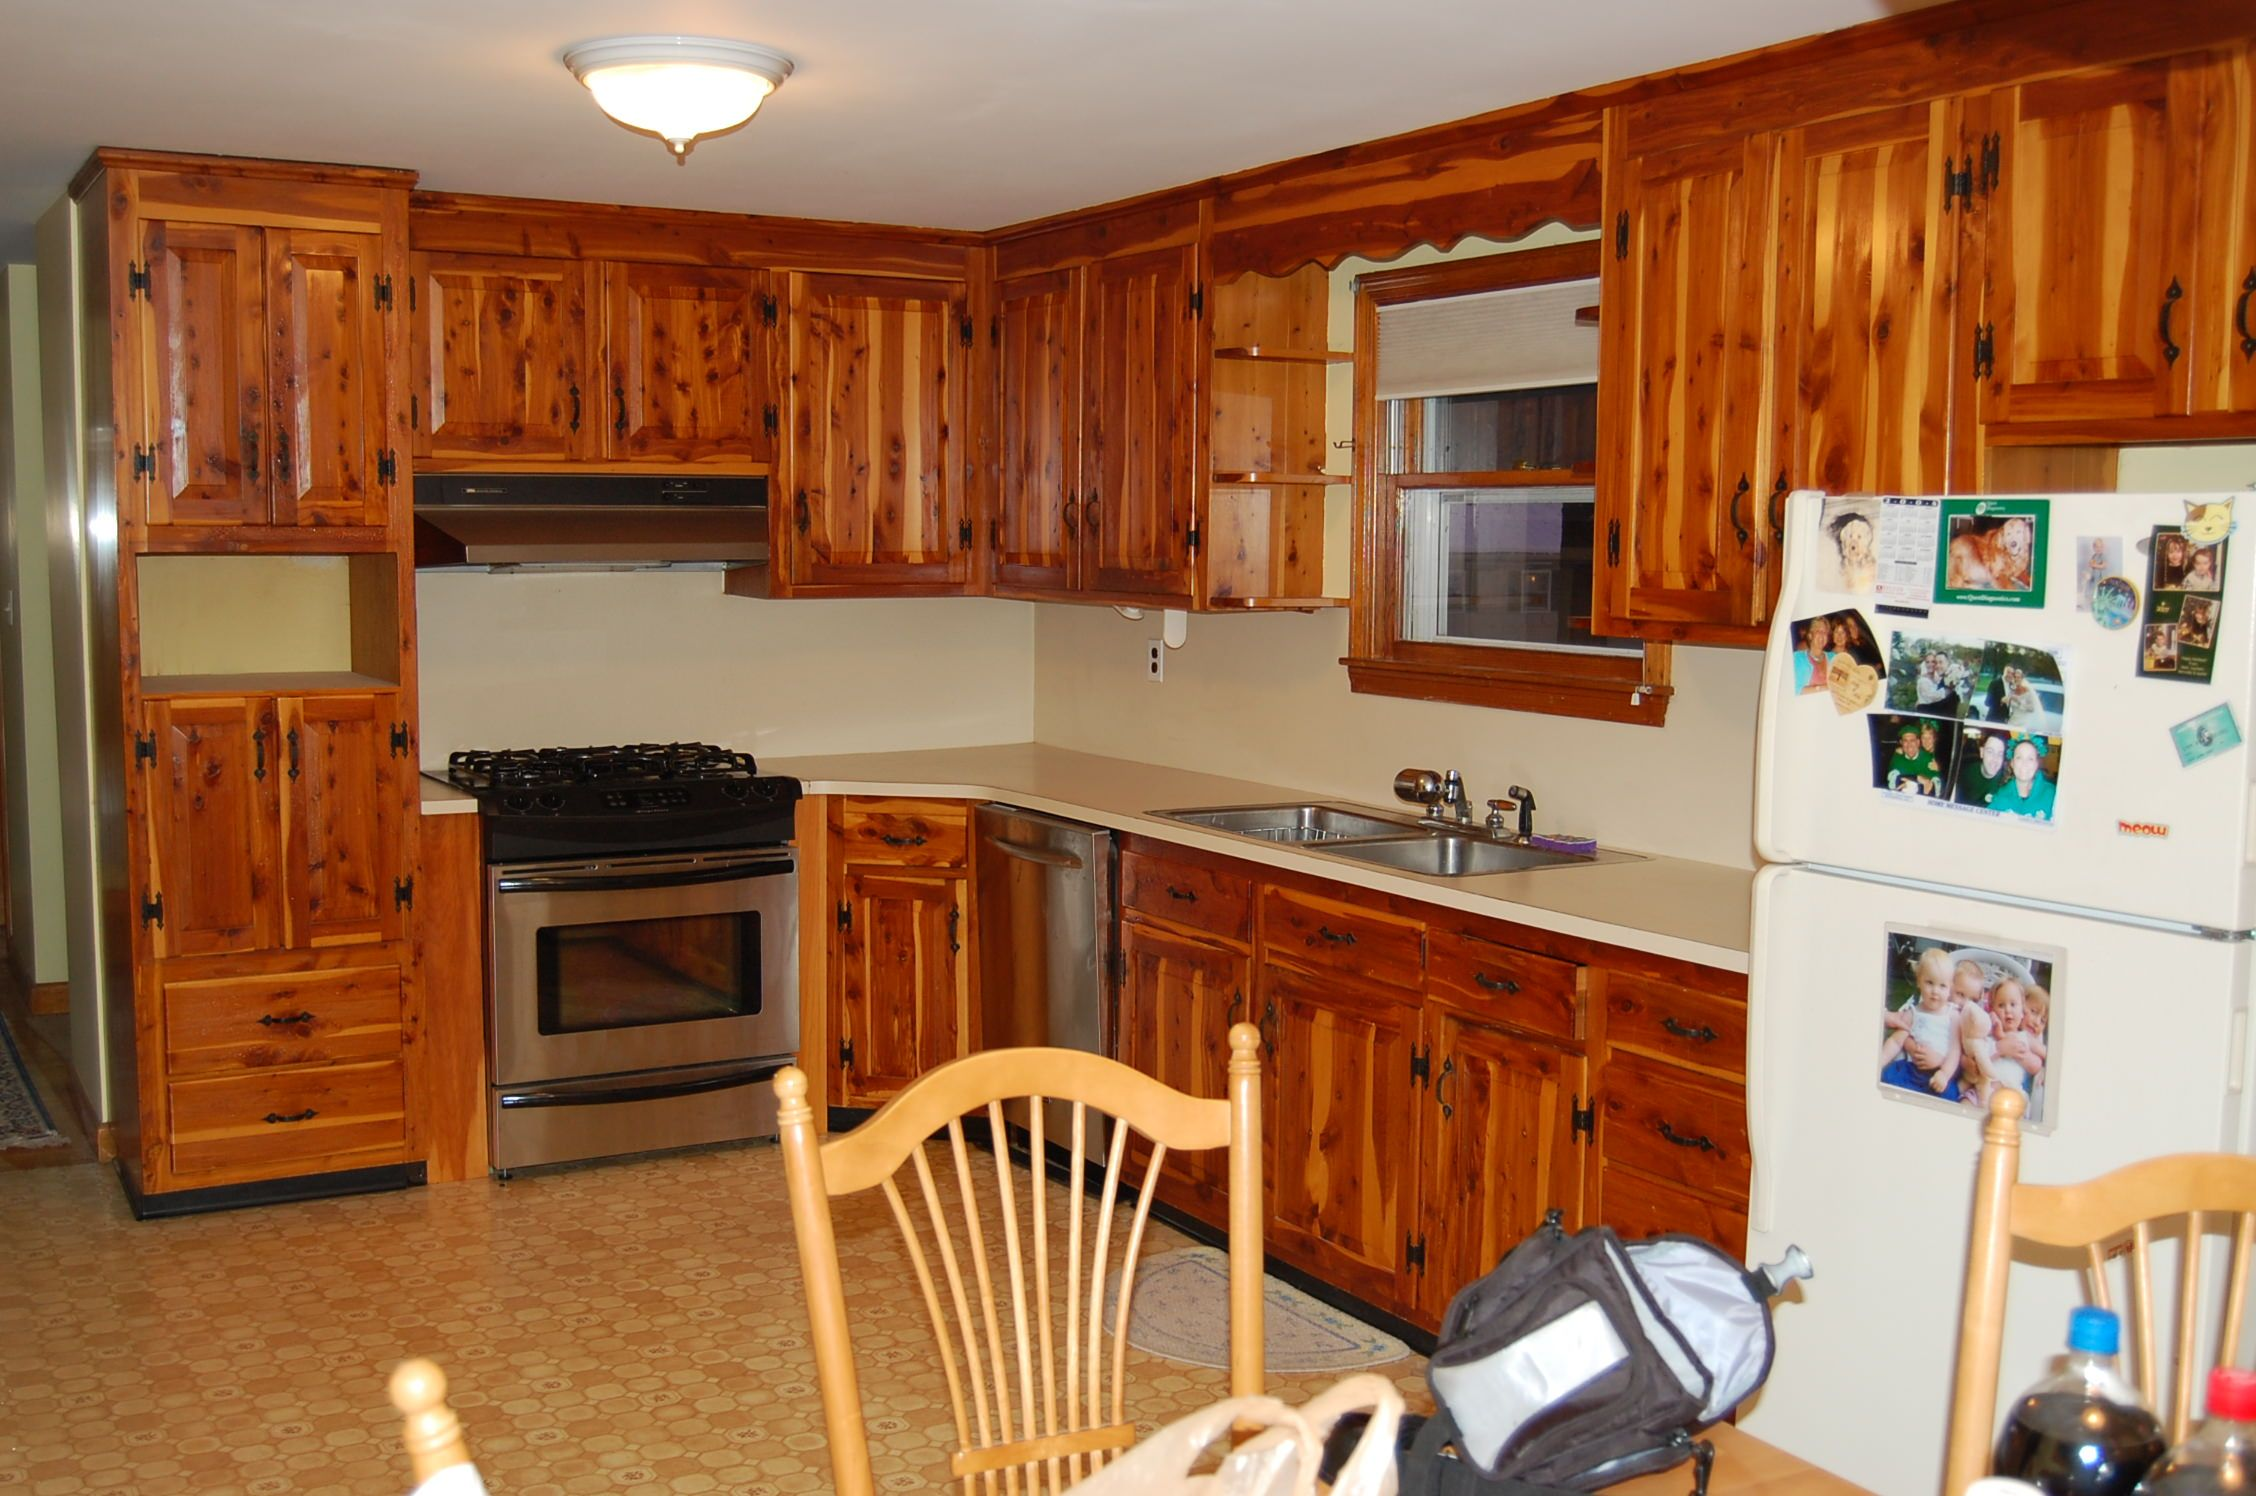 How to Resurface Cabinets and Refinish Kitchen Cabinets ...